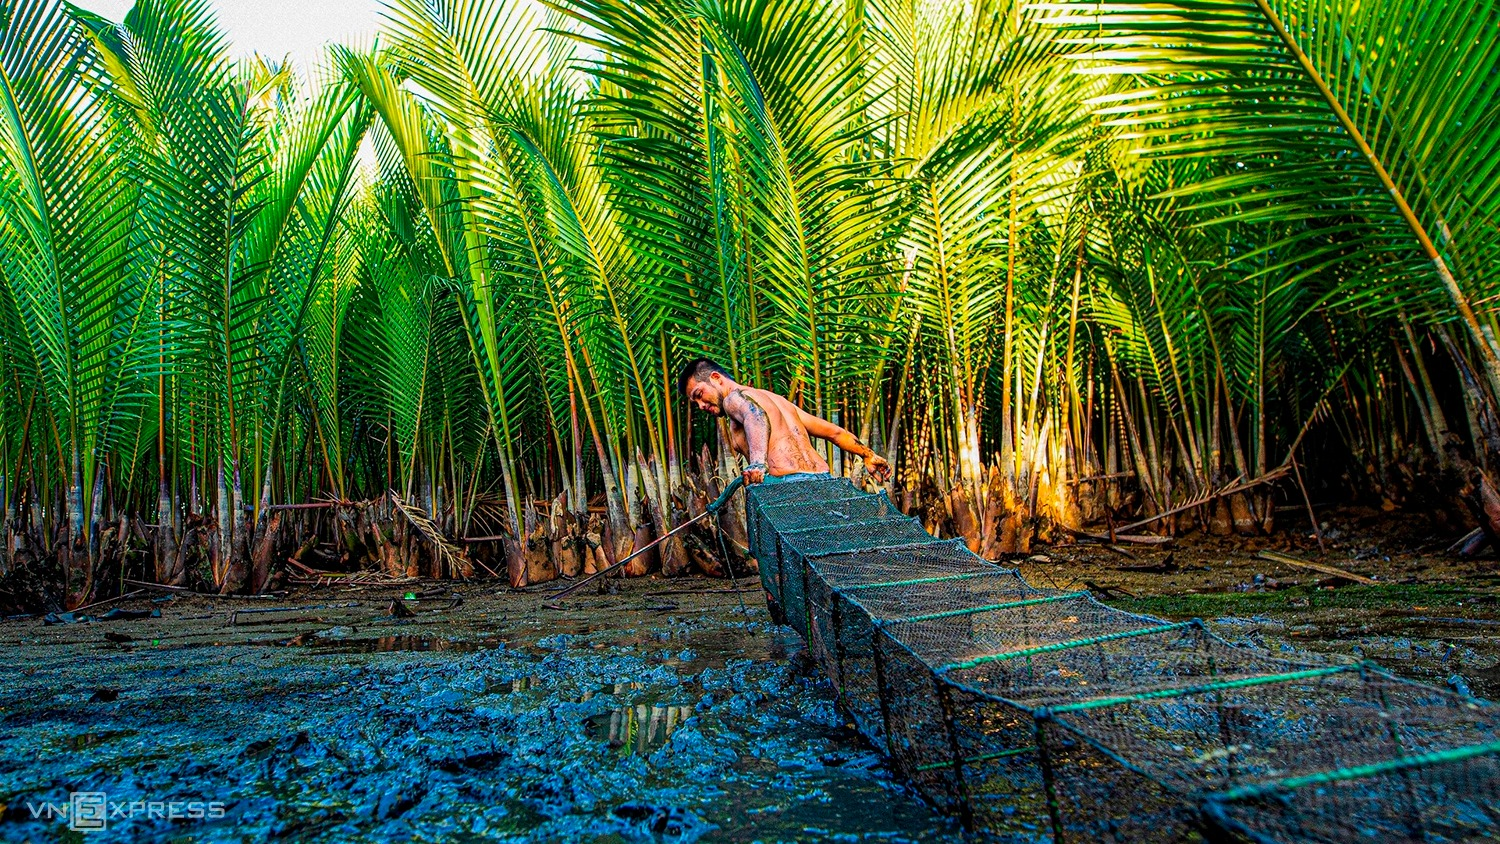 Once wartime shelter, Quang Ngai's nipa palm forest turns tourist attraction